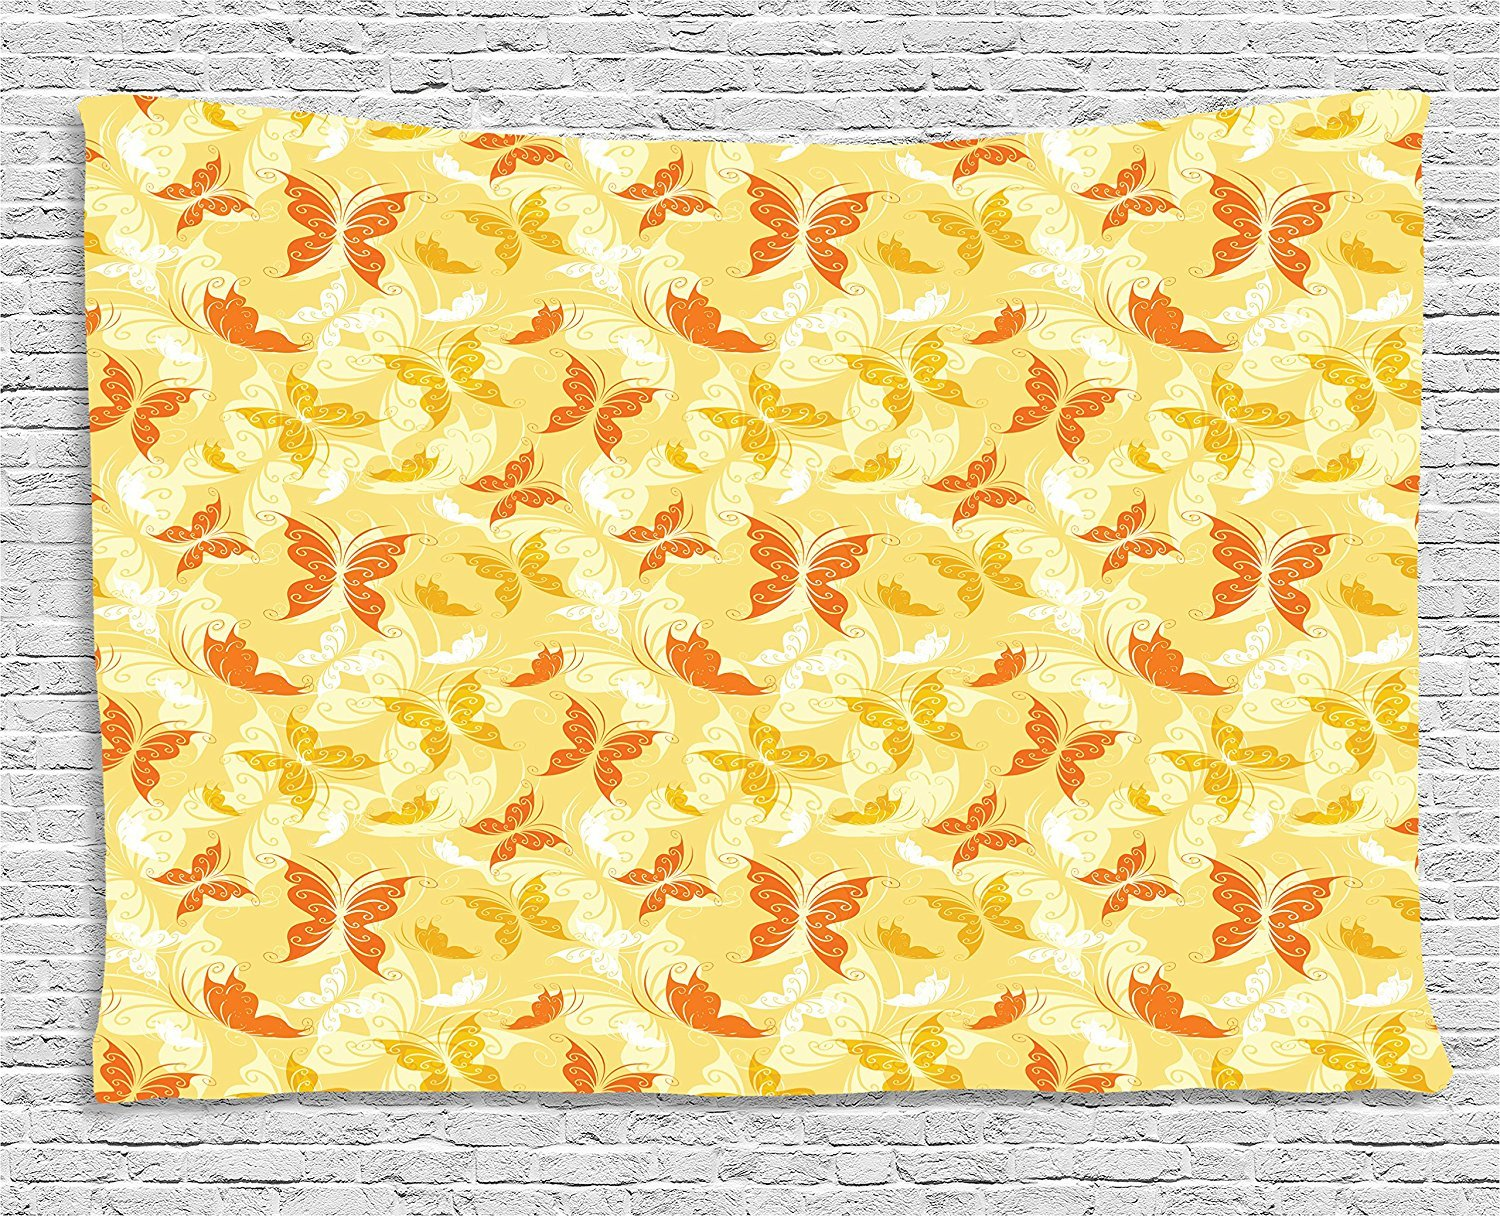 Yellow and White Tapestry, Butterfly Pattern with Swirls Romantic Animals of Spring, Wall Hanging for Bedroom Living Room Dorm, 80 W X 60 L Inches, Orange Yellow Earth Yellow